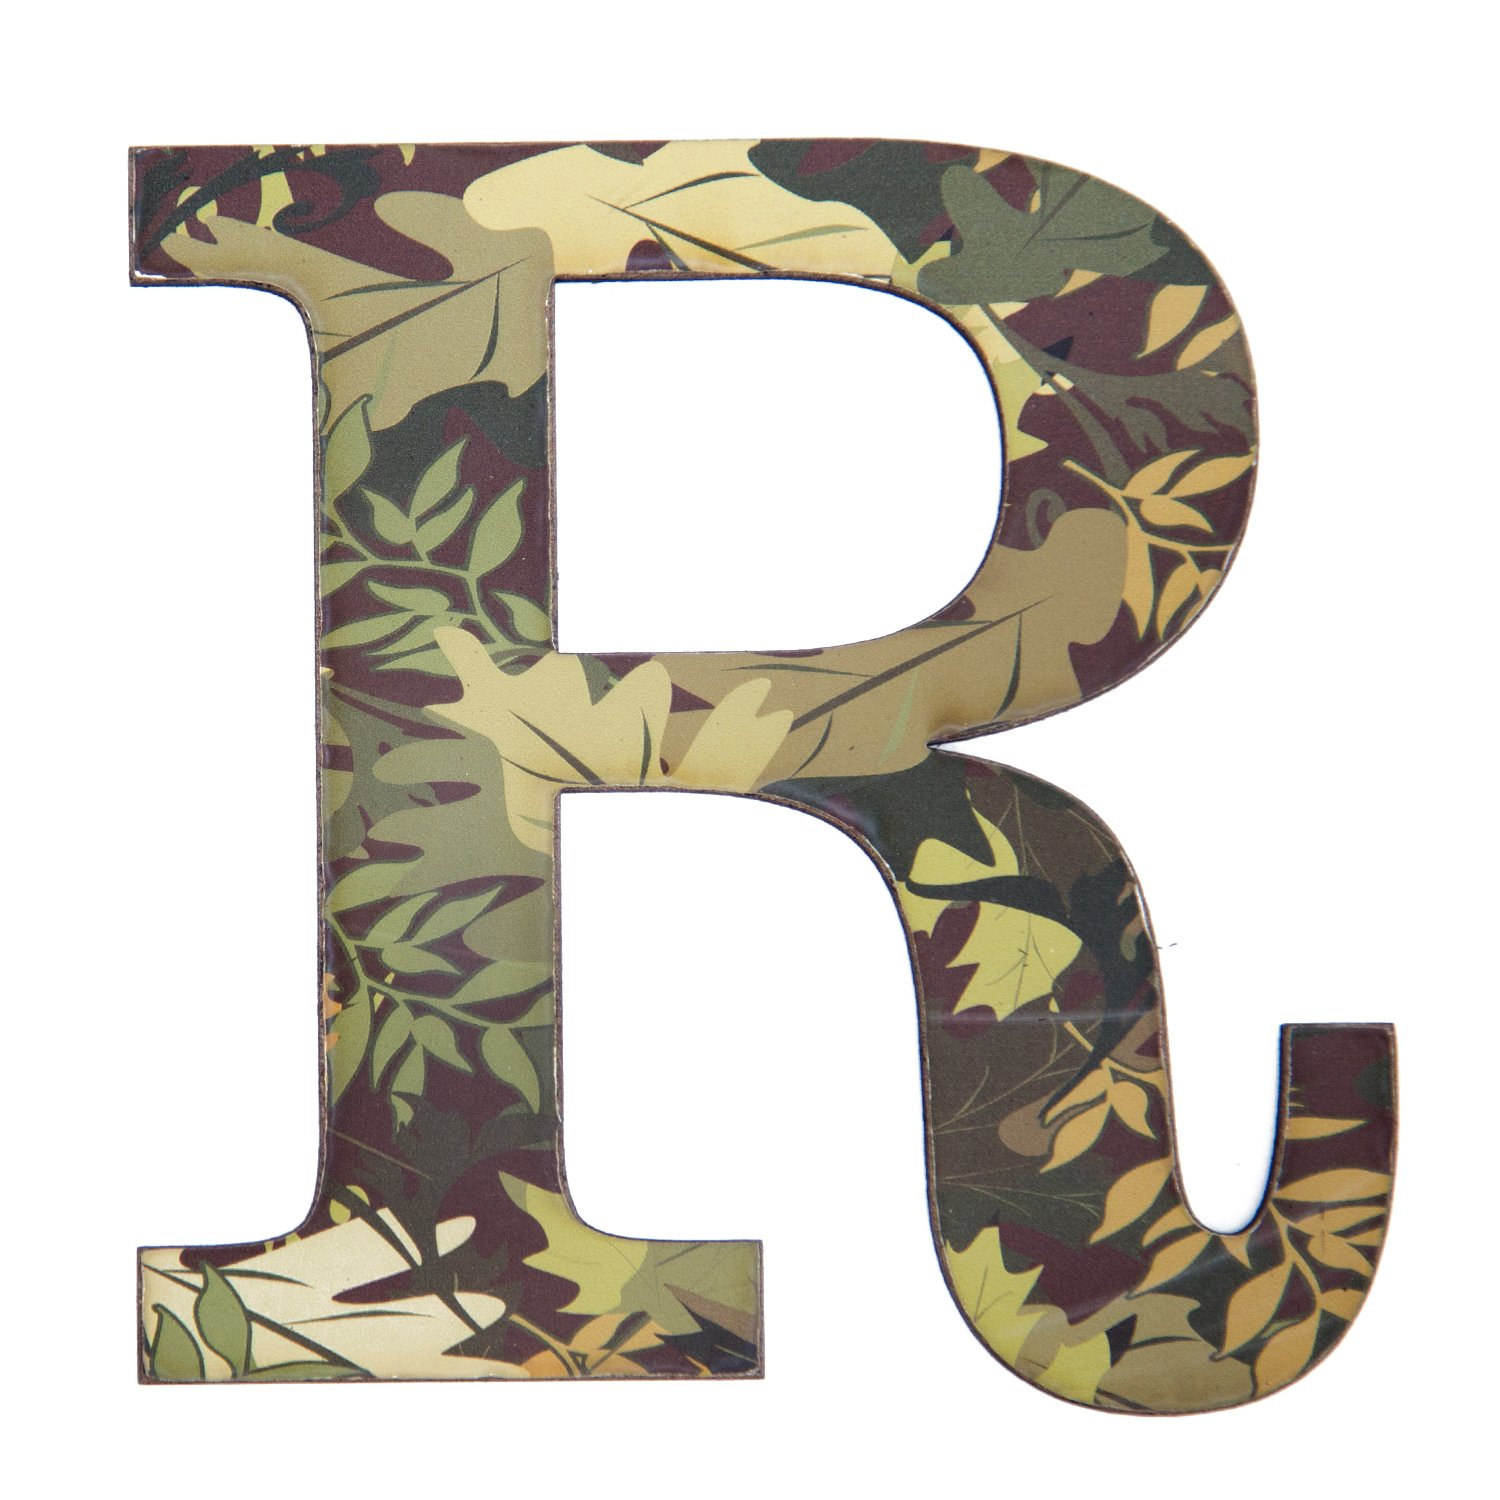 Amazon Com 11 Tall Mossy Oak Designer Camo Wall Letter R Camo Pattern 3d Wall Decor Unique Wall Initial For Living Room Bedroom Man Cave Boys Room Girls